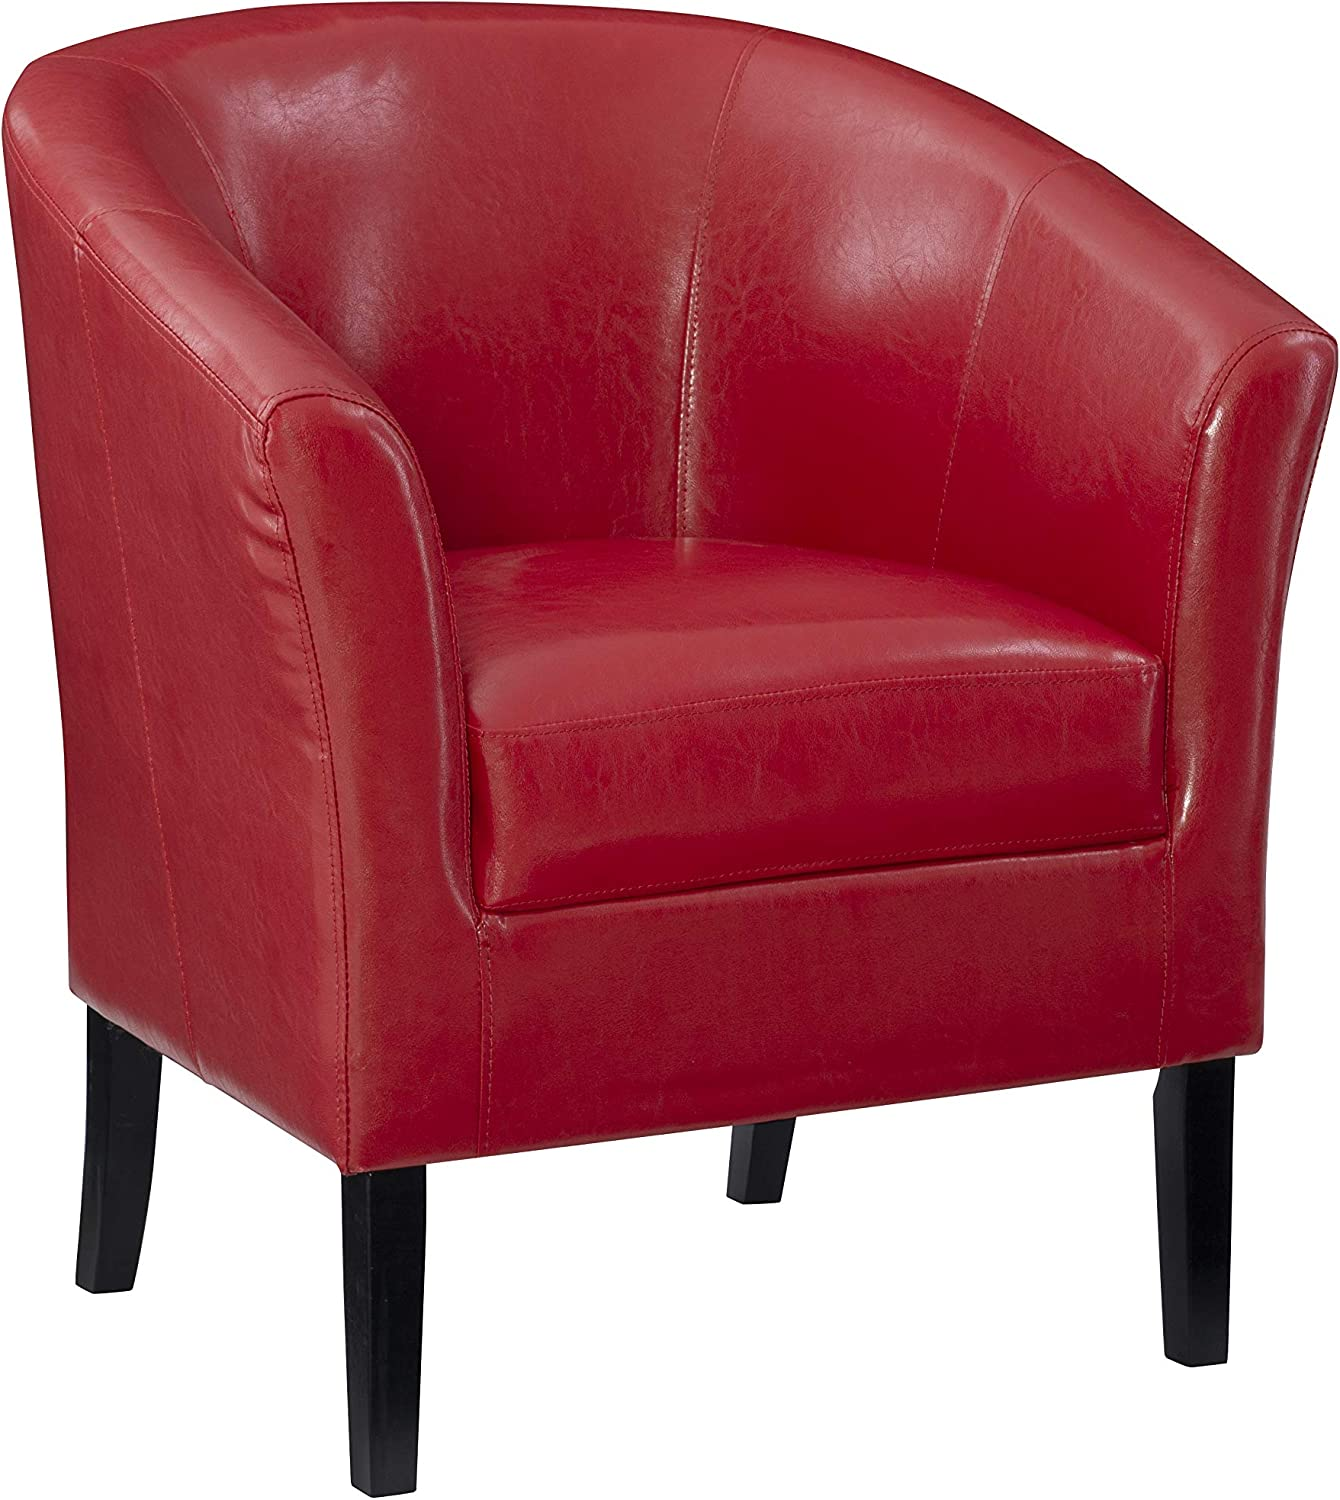 Linon Chair, Red